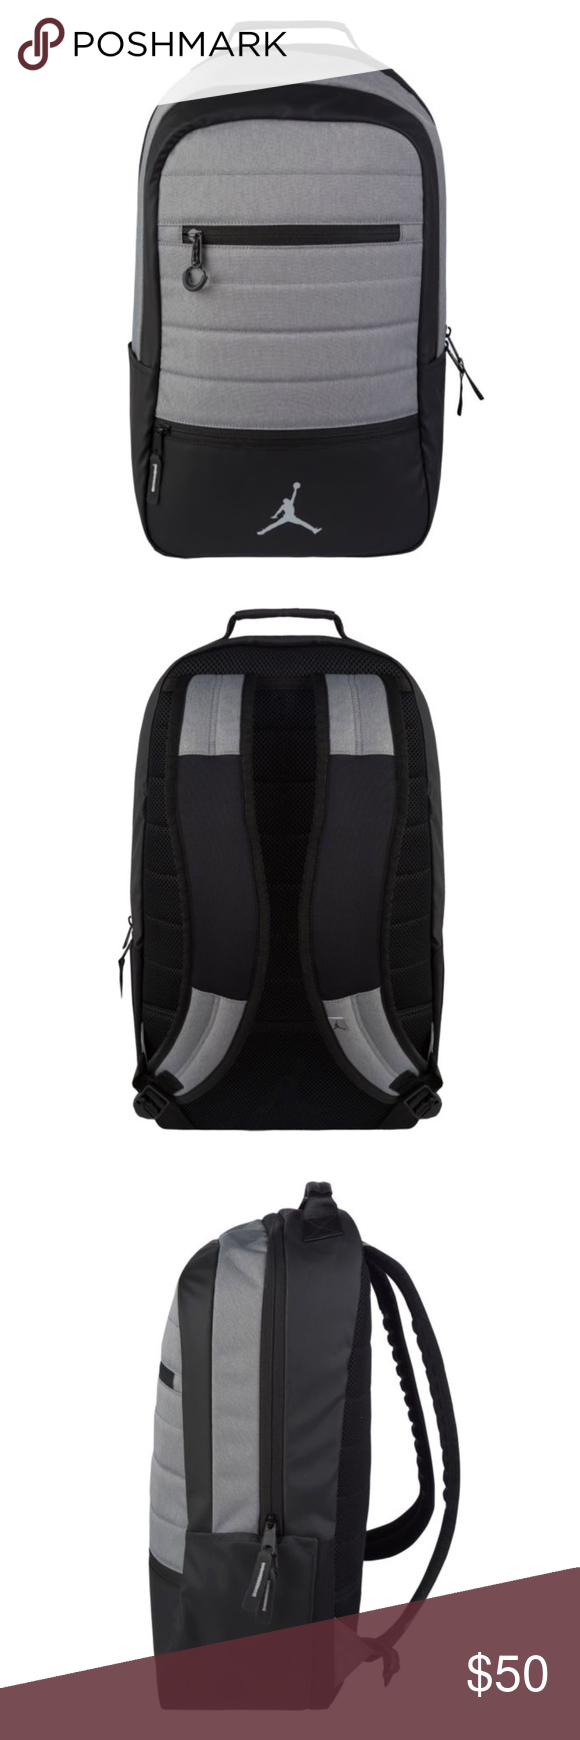 4c428f7b354f Nike JORDAN AIRBORNE Backpack A sport backpack that can transition from the  gym to class